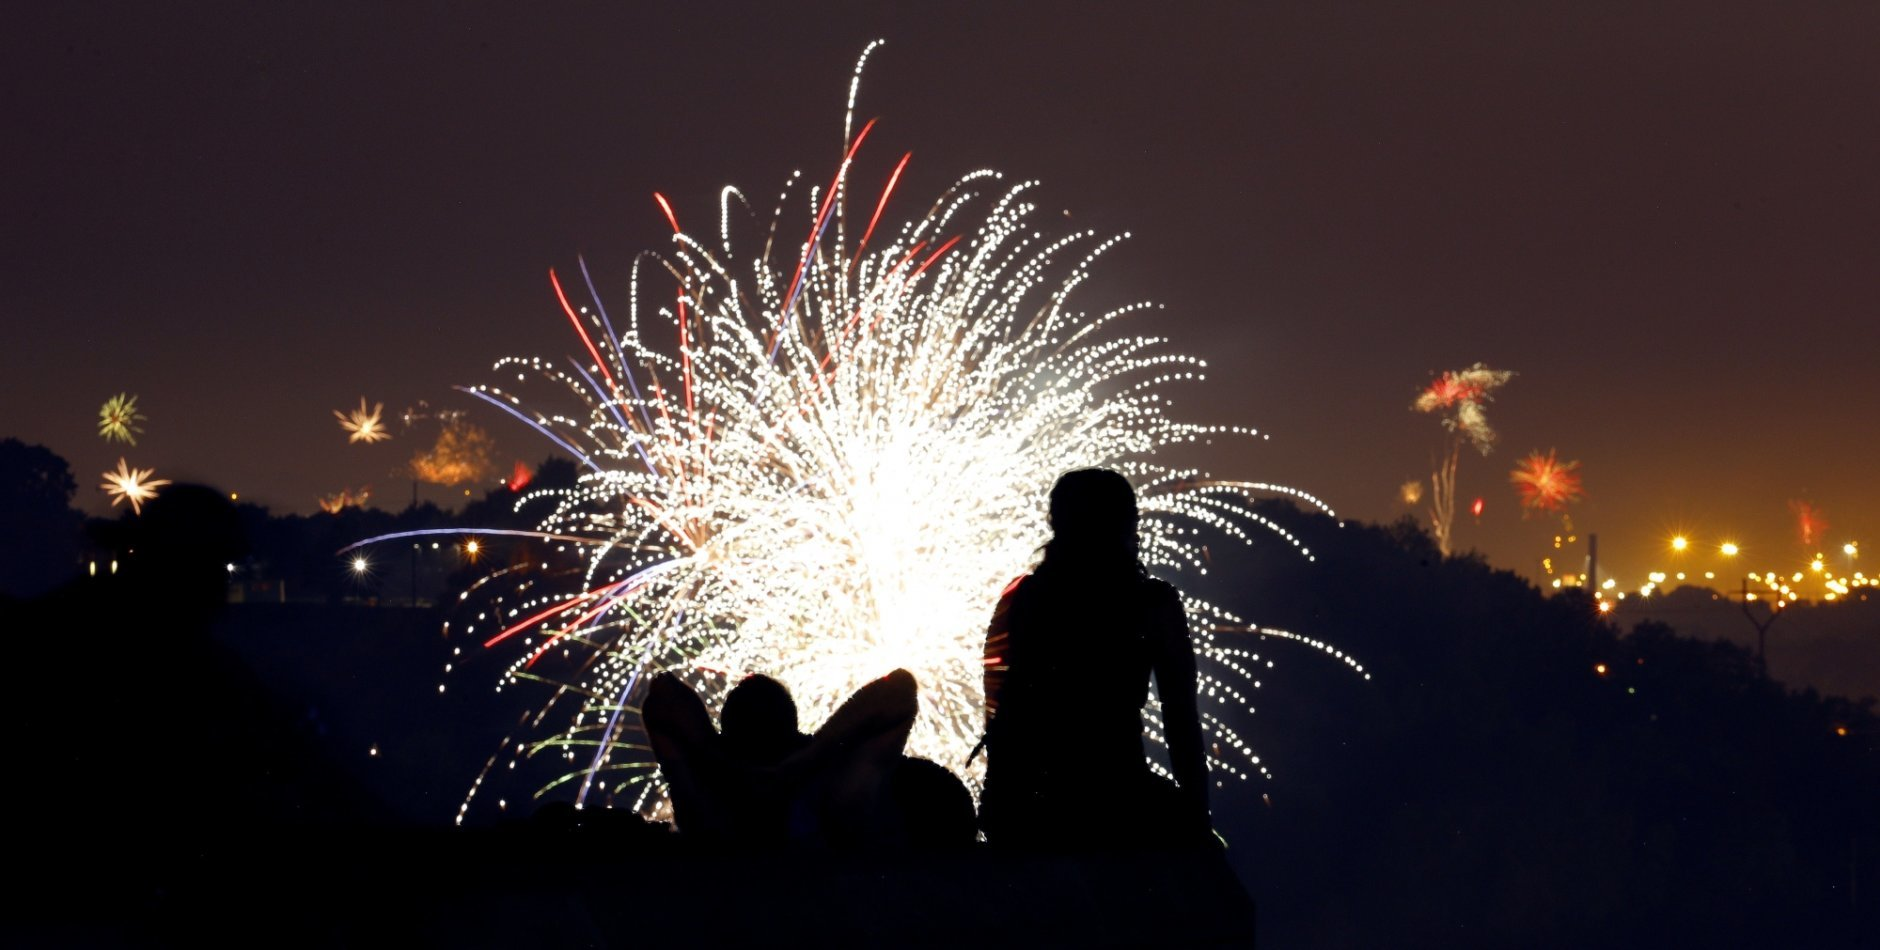 A couple watches fireworks set off by private citizens to celebrate Independence Day, from a vantage point at the Liberty Memorial on Wednesday, July 4, 2018, in Kansas City, Mo. (AP Photo/Charlie Riedel)